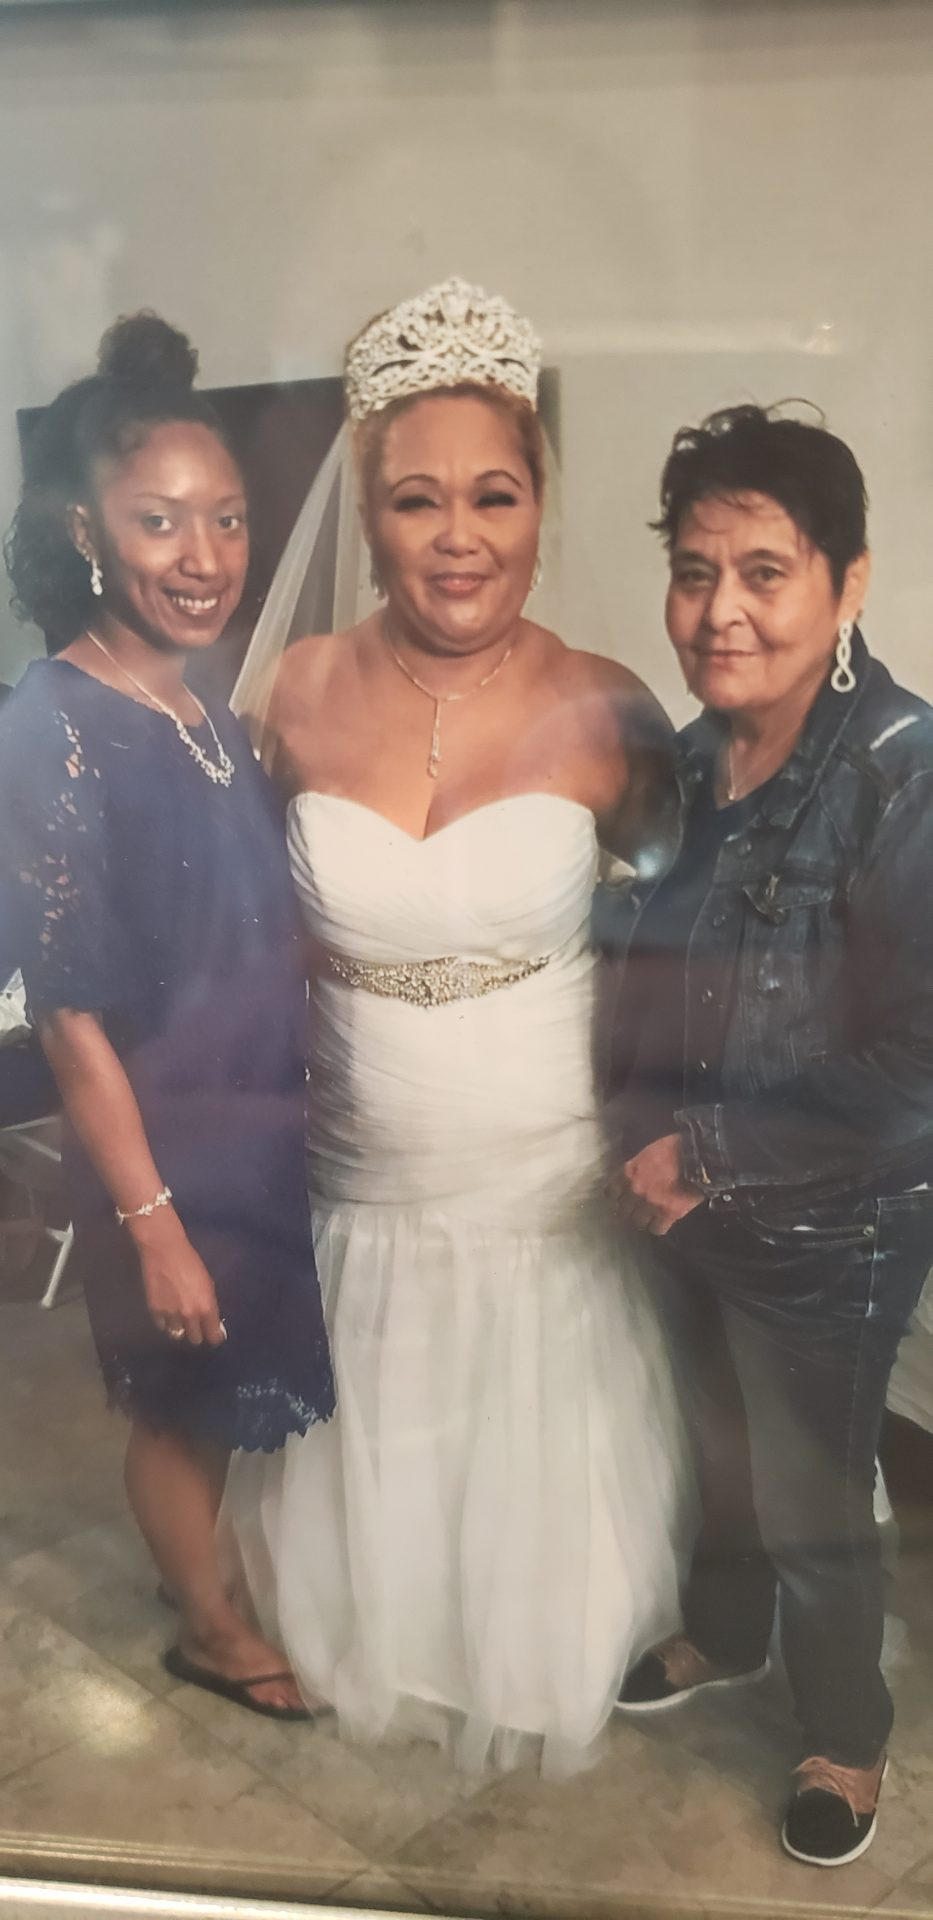 Mommy.. I will never forget. You made that day so much more special.  I love you. Rest in peace my angel in Heaven